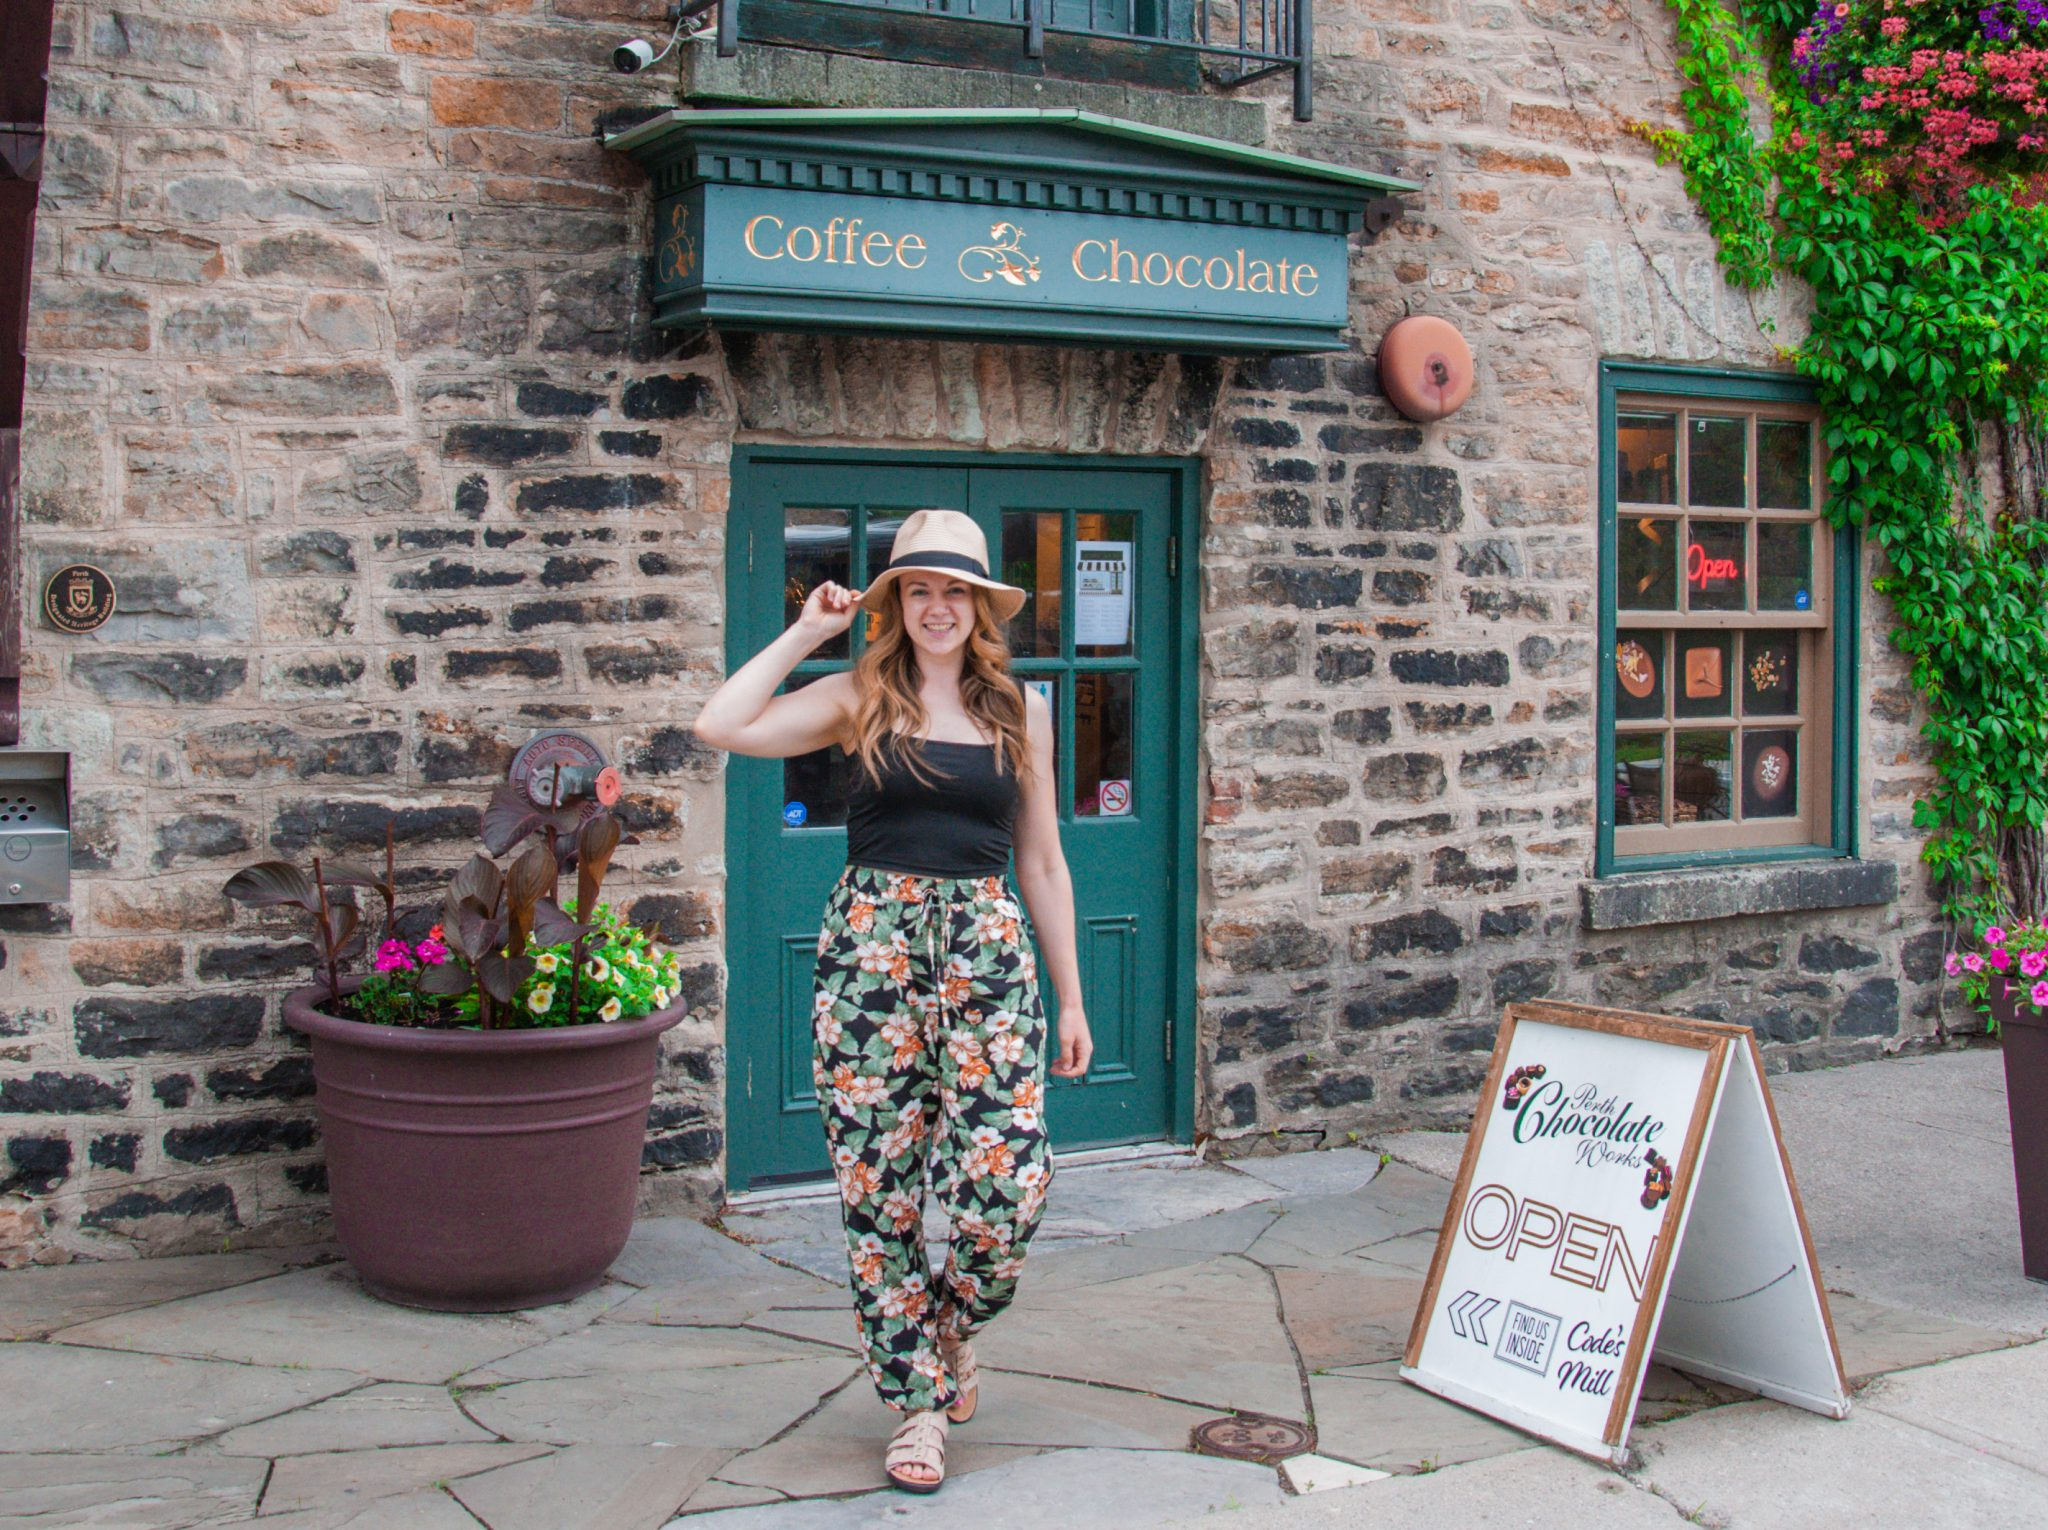 10 Things to do in Perth, Ontario: Sights, Activities, and Food